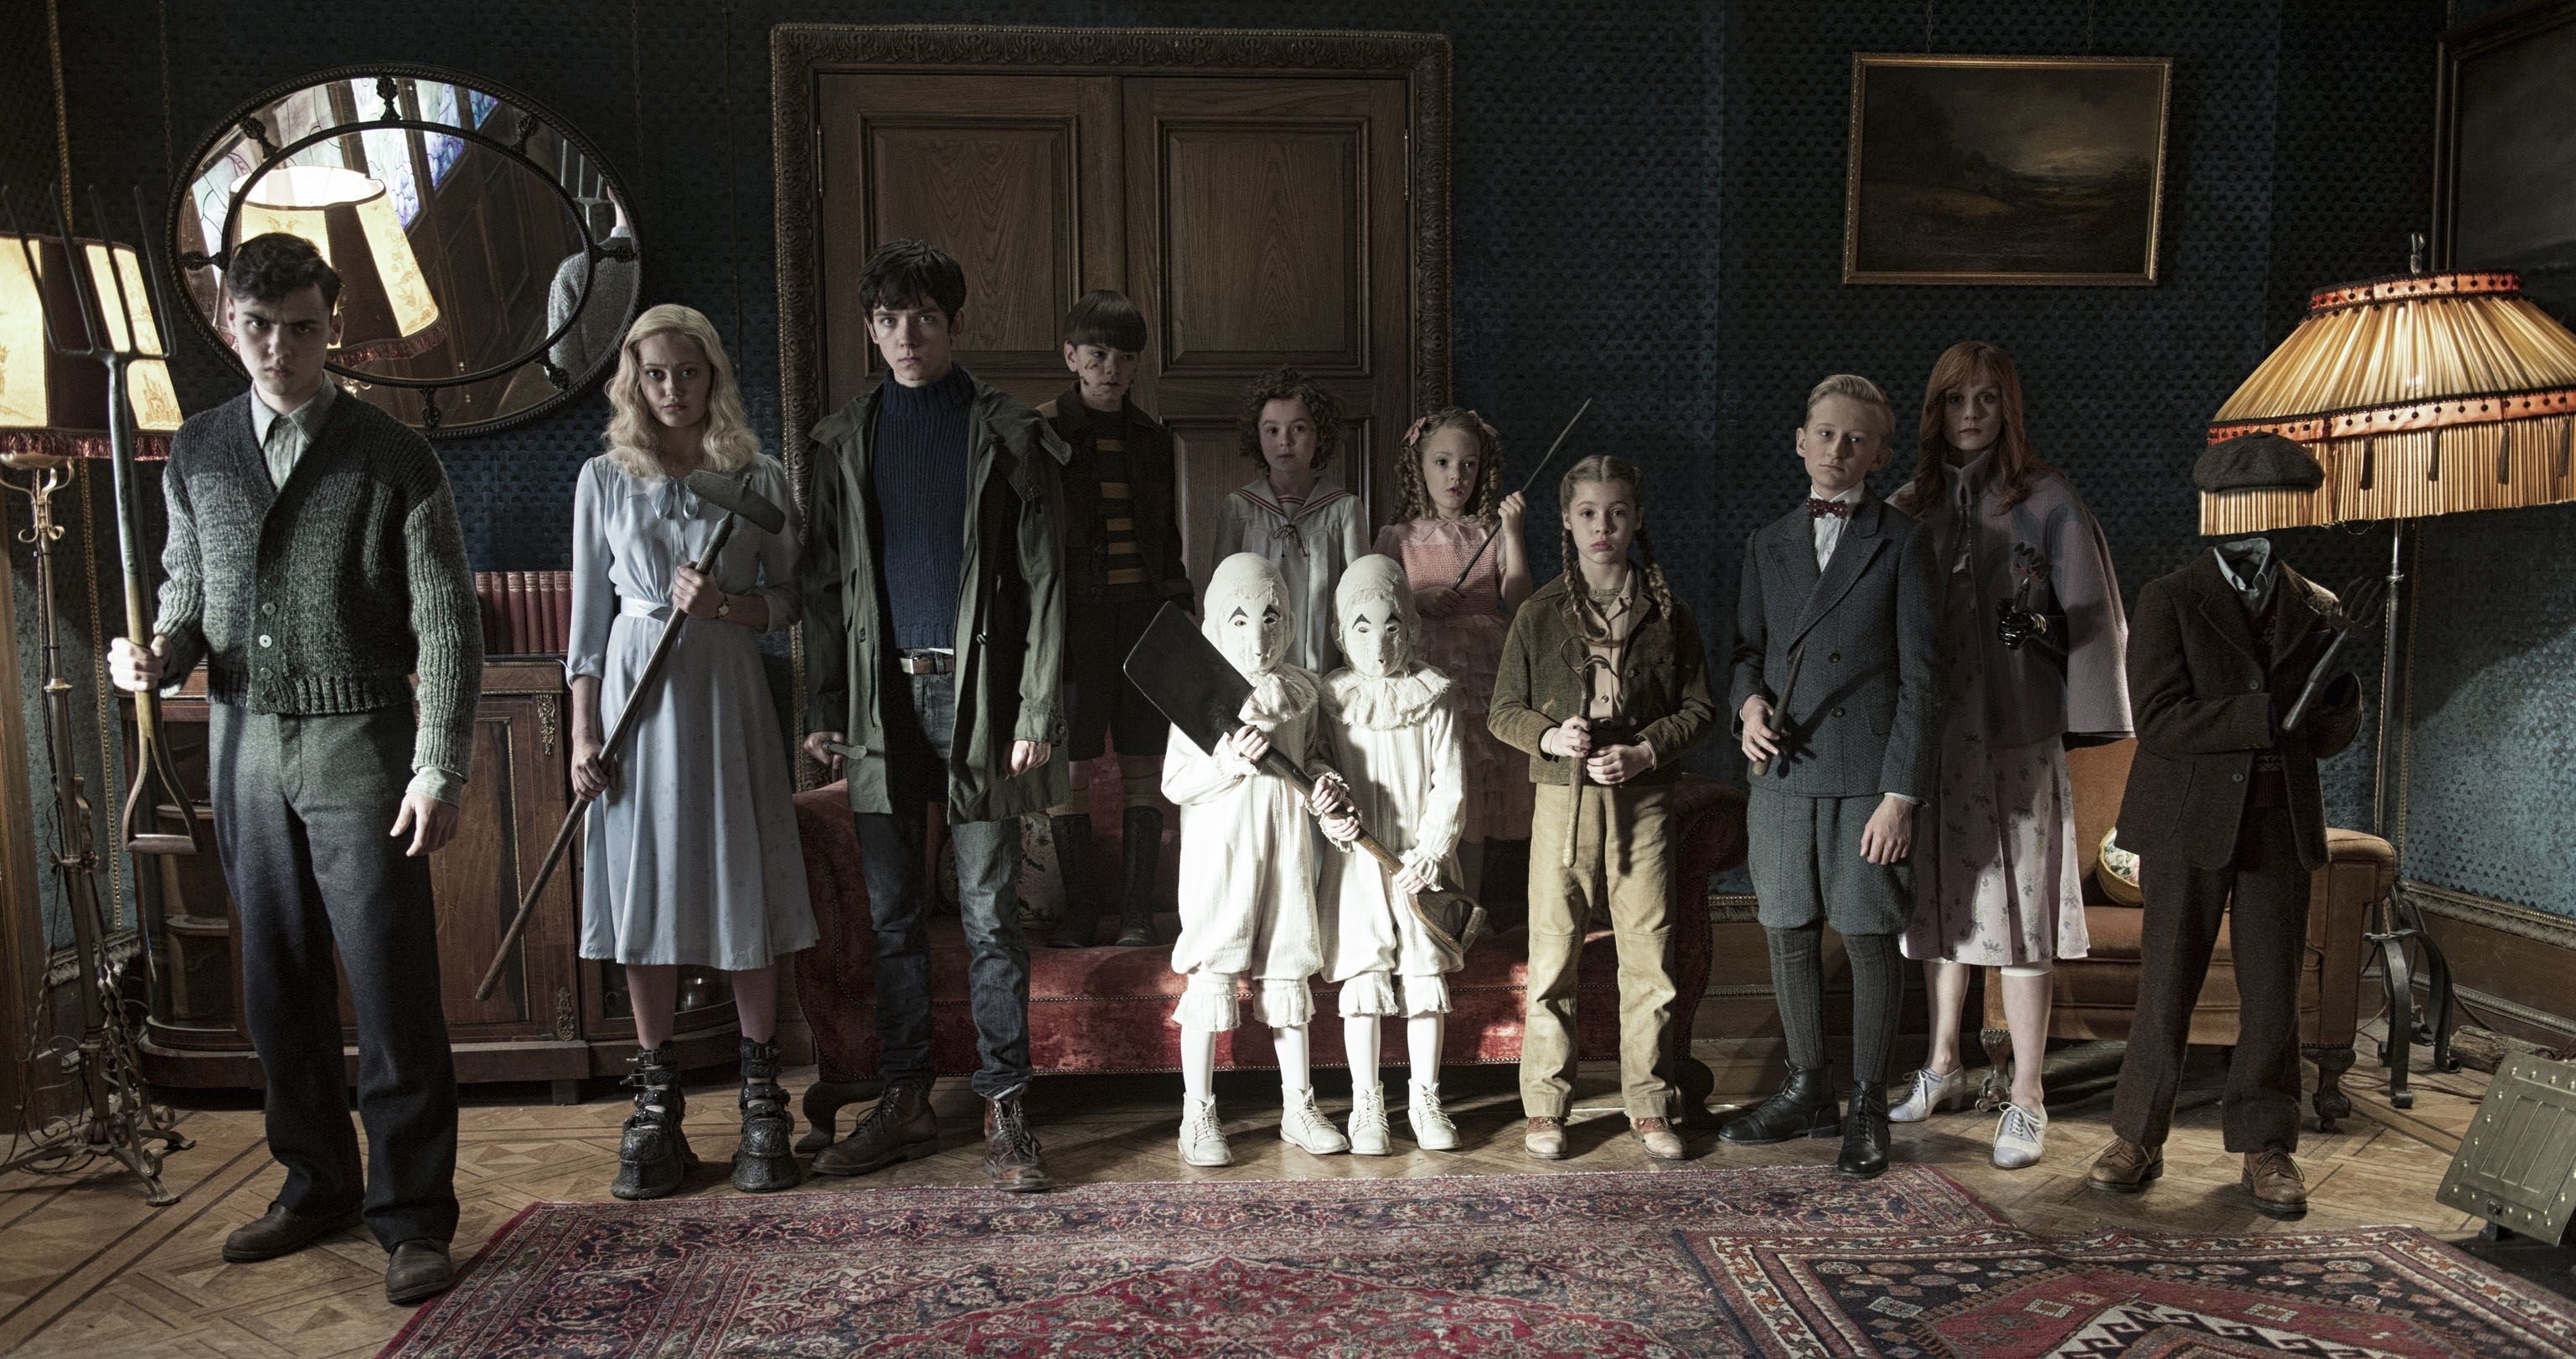 The Fantastical Filming Locations And Sets Of Miss Peregrine S Home For Peculiar Children Miss Peregrines Home For Peculiar Home For Peculiar Children Peculiar Children Movie